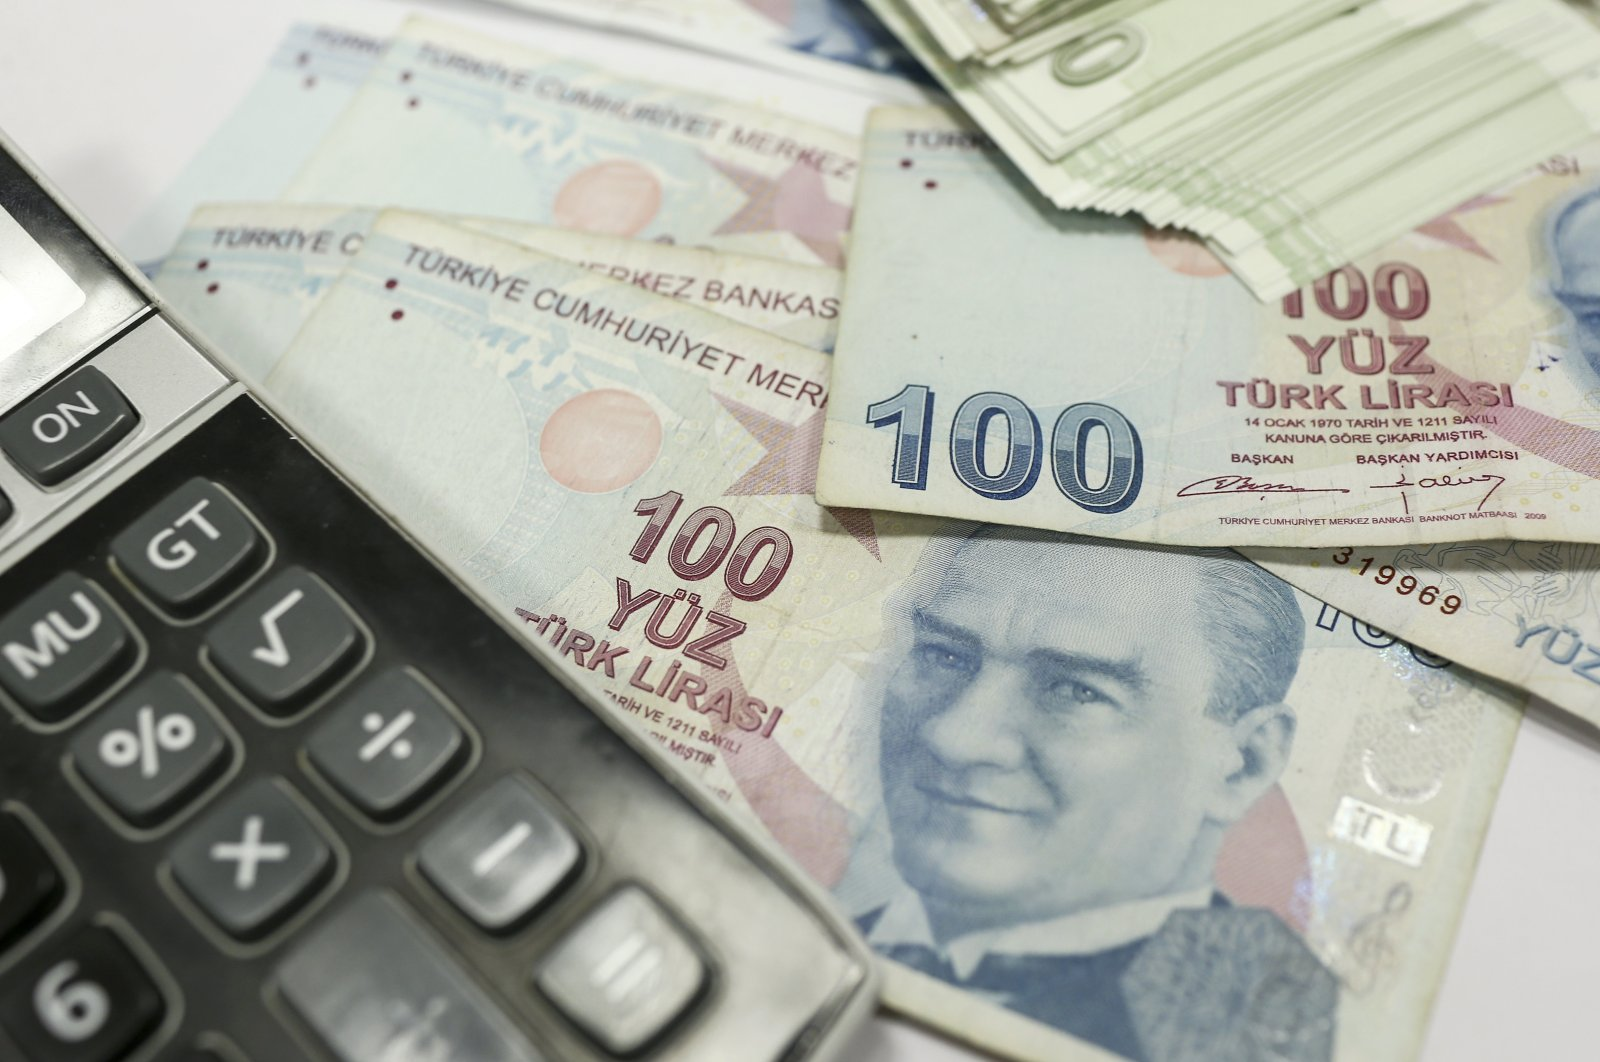 This undated file photo shows Turkish lira banknotes next to a calculator. (AA Photo)